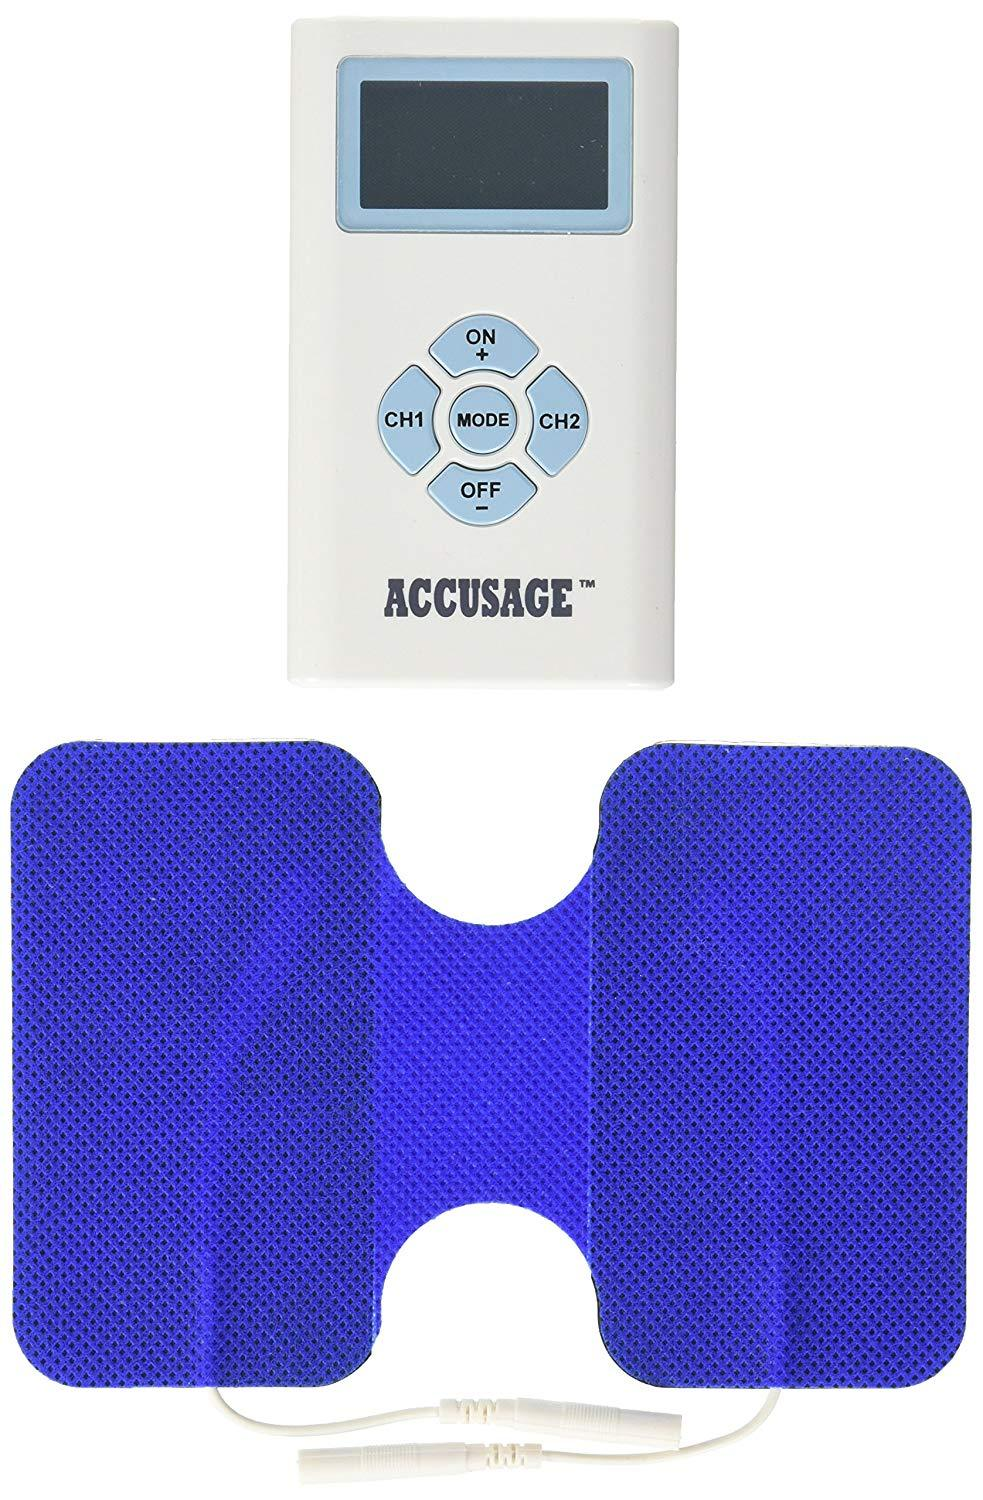 Accusage Plus Ems Remote Controlled Pain Relief Massager